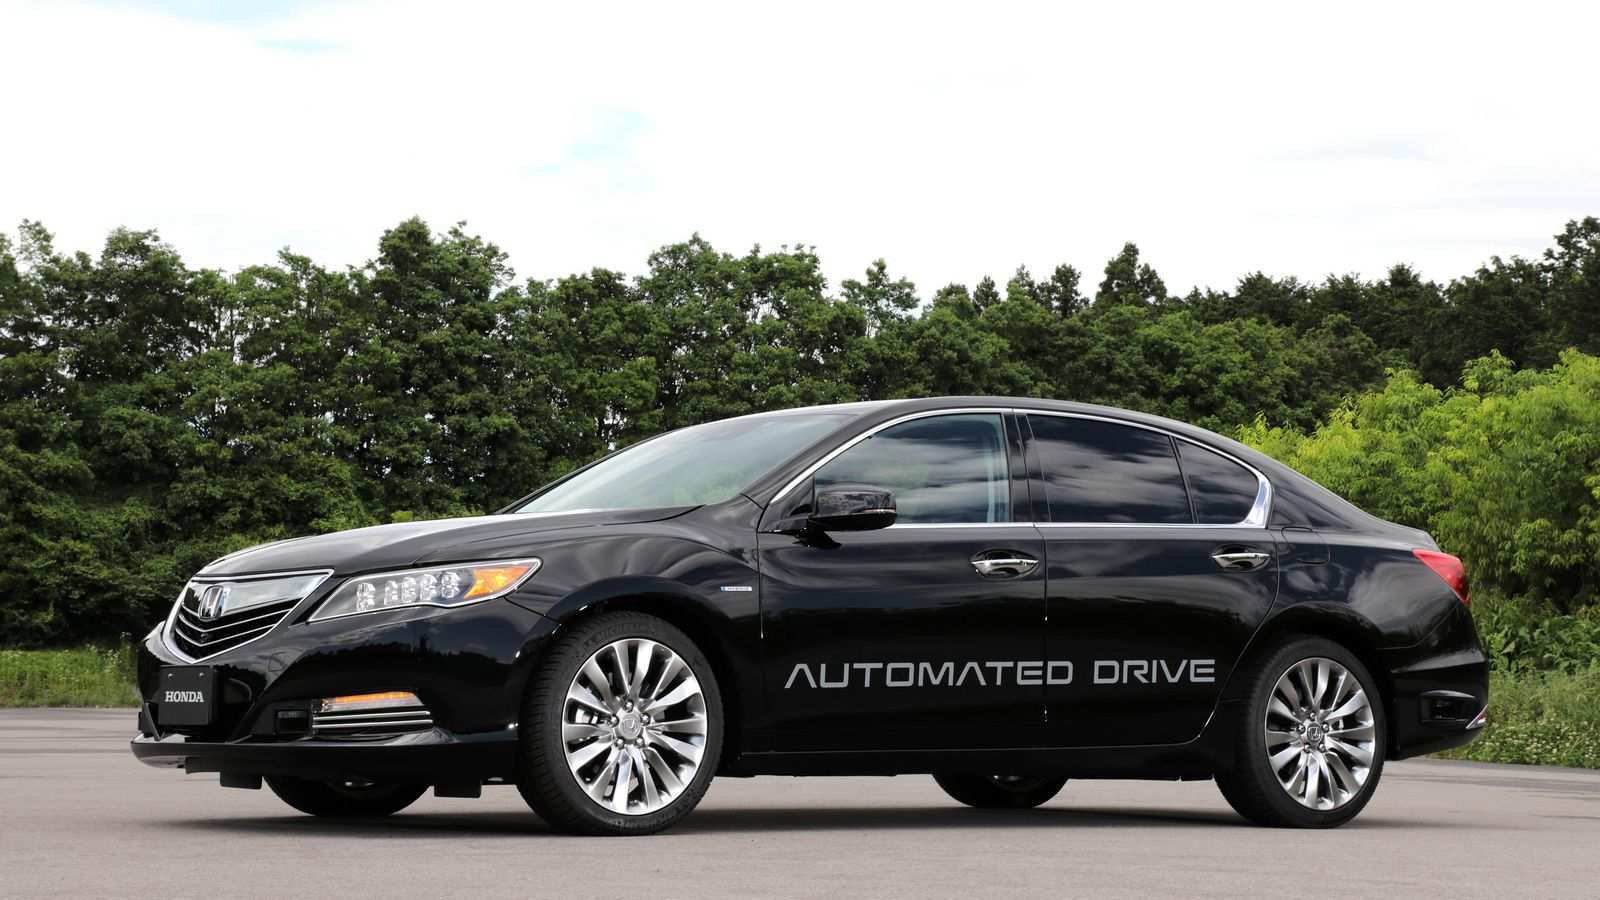 88 All New 2020 Honda Legend Price and Review by 2020 Honda Legend